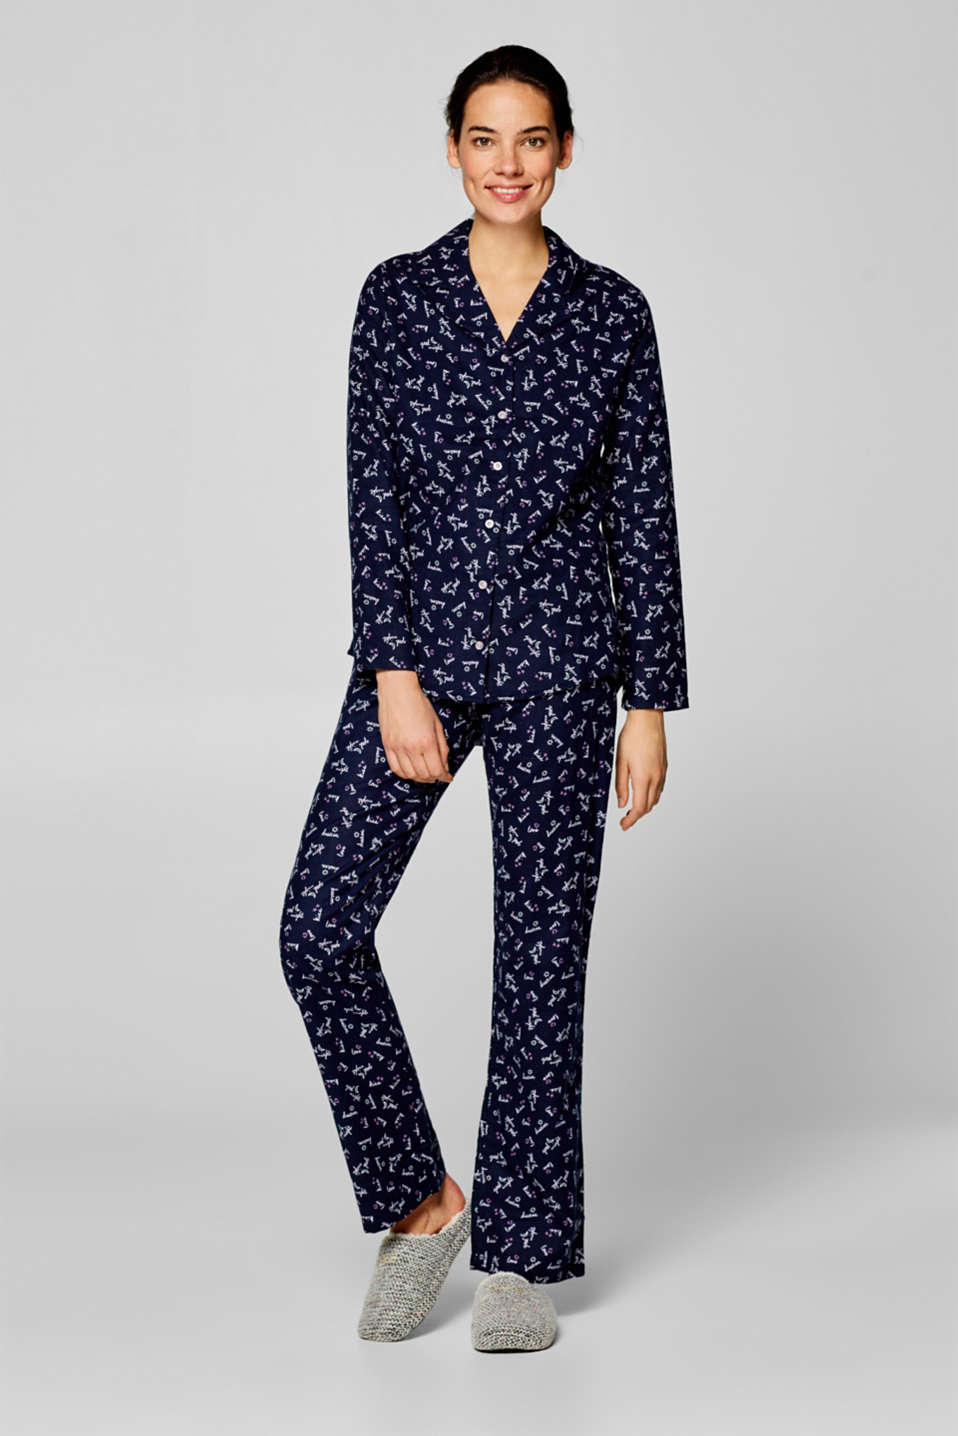 Esprit - Flannel pyjamas with printed lettering, 100% cotton